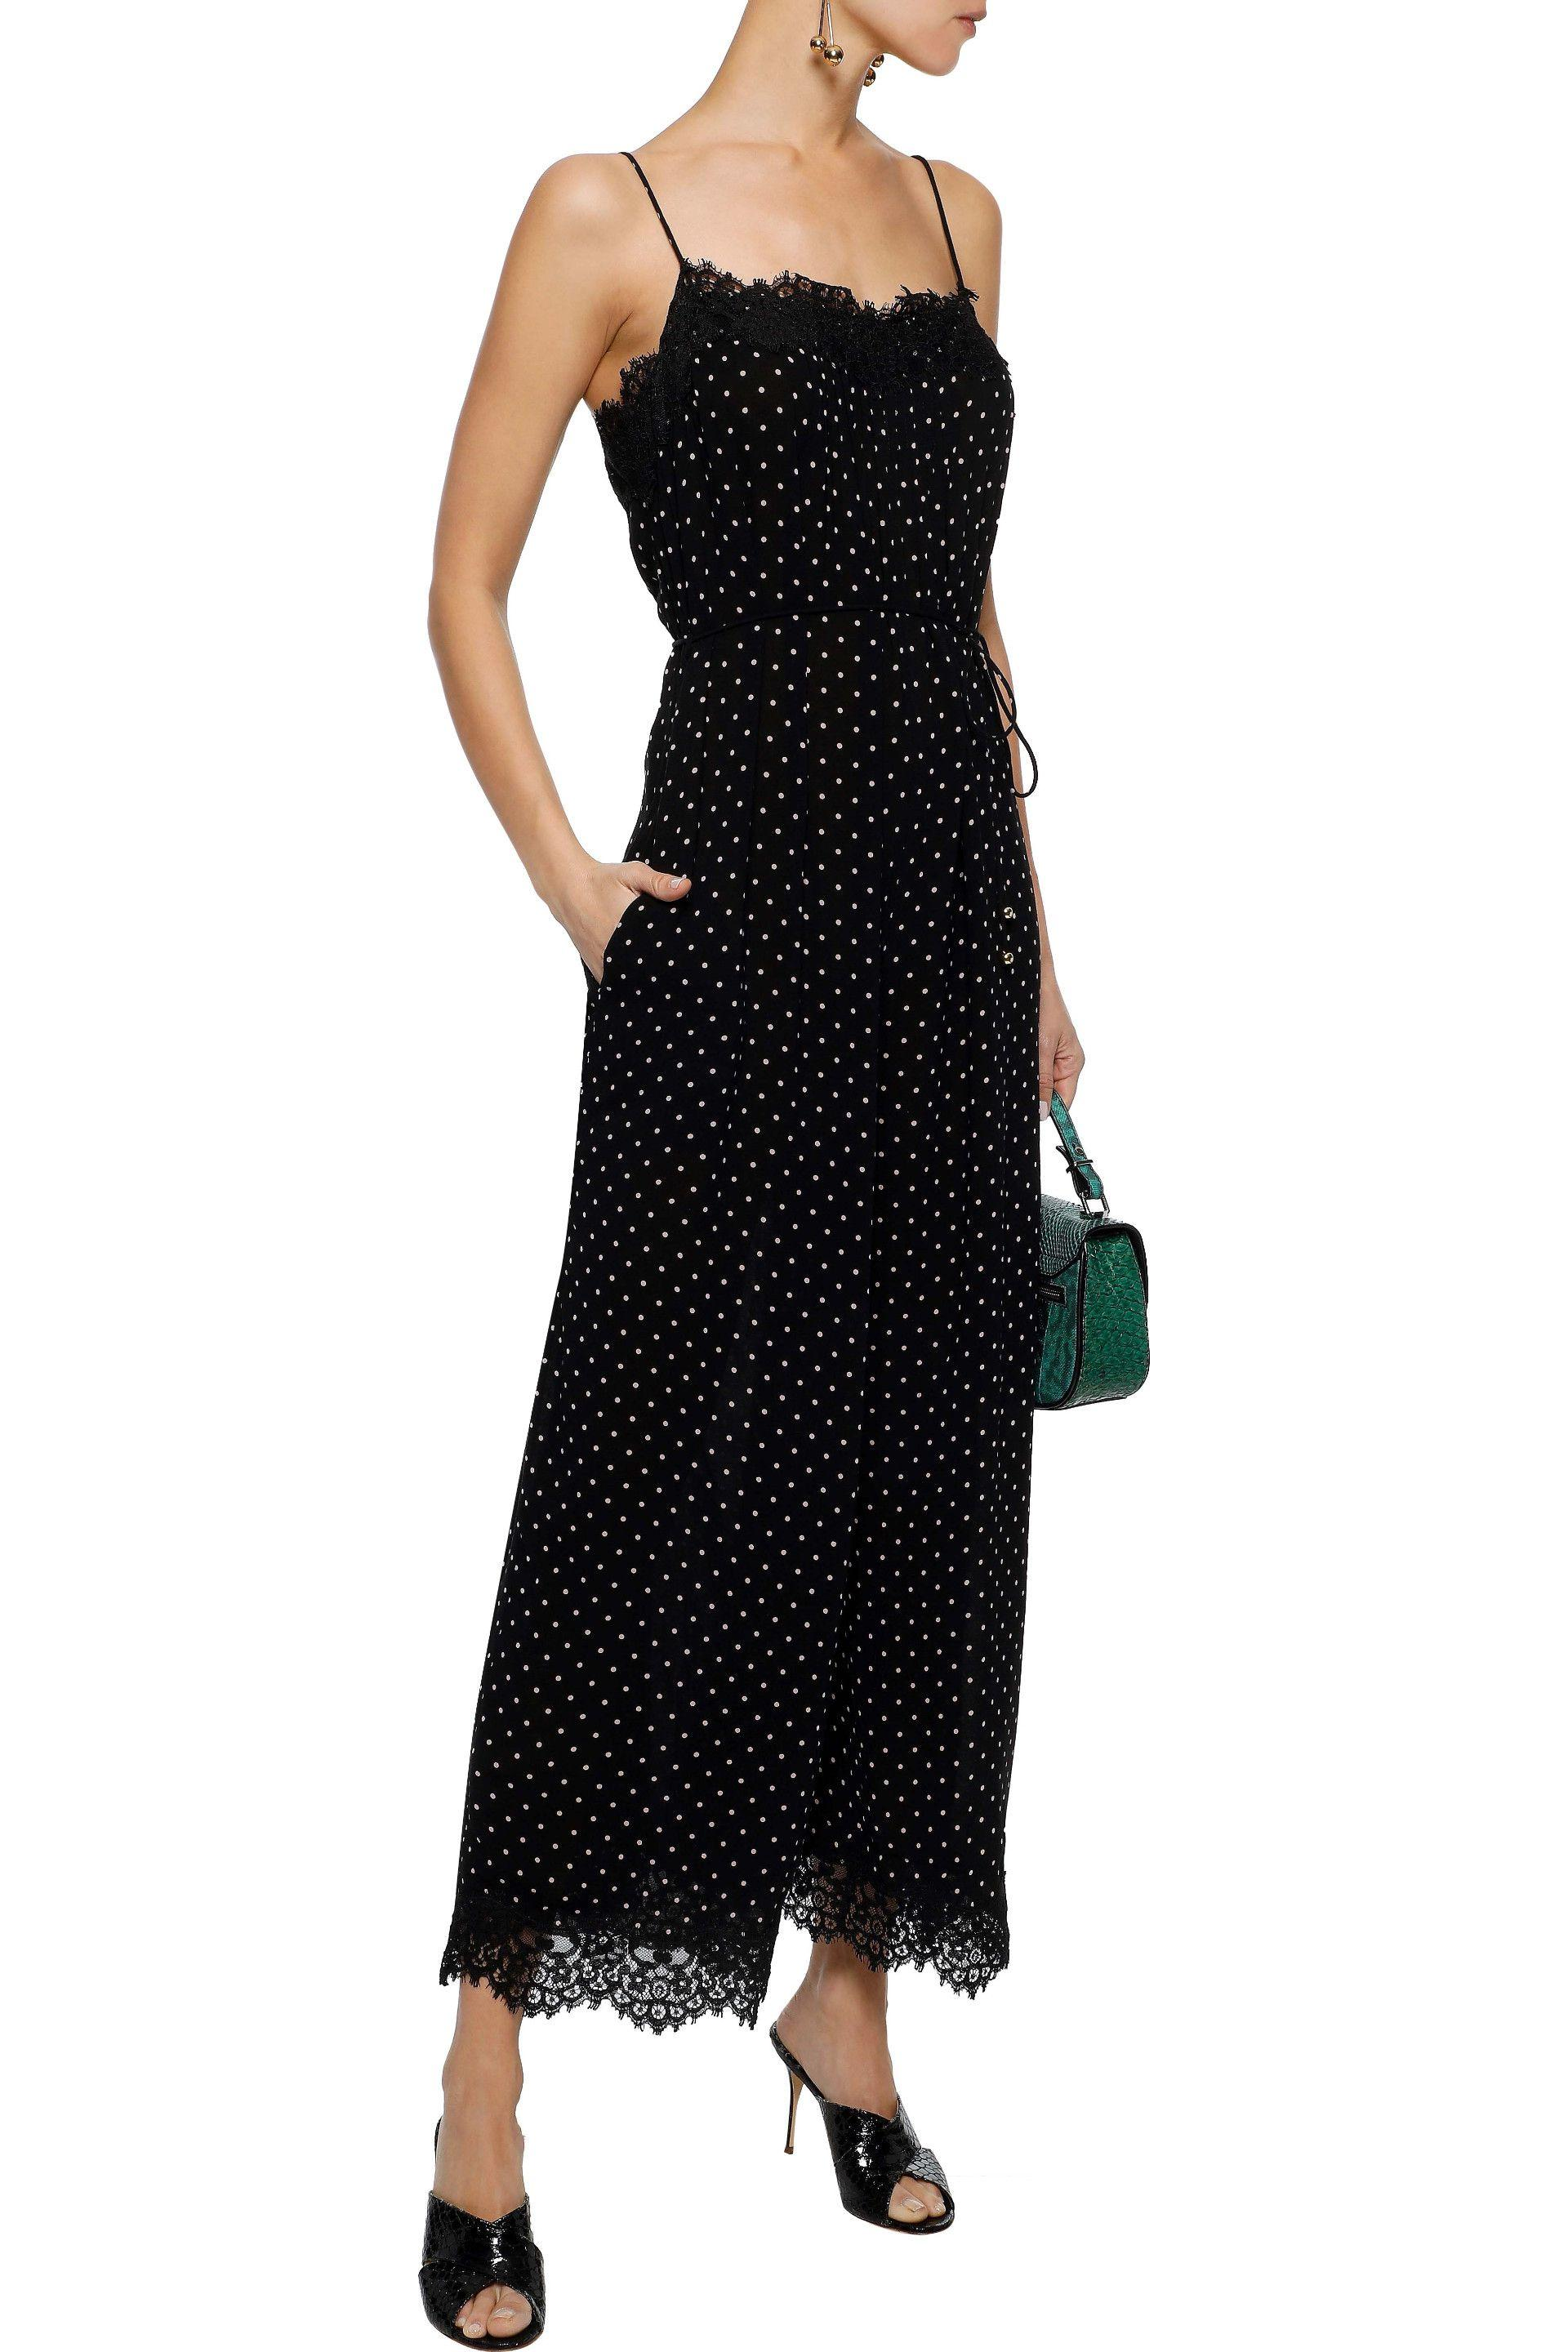 940aa2cc2c Lyst - Zimmermann Woman Cropped Lace-trimmed Polka-dot Crepe ...